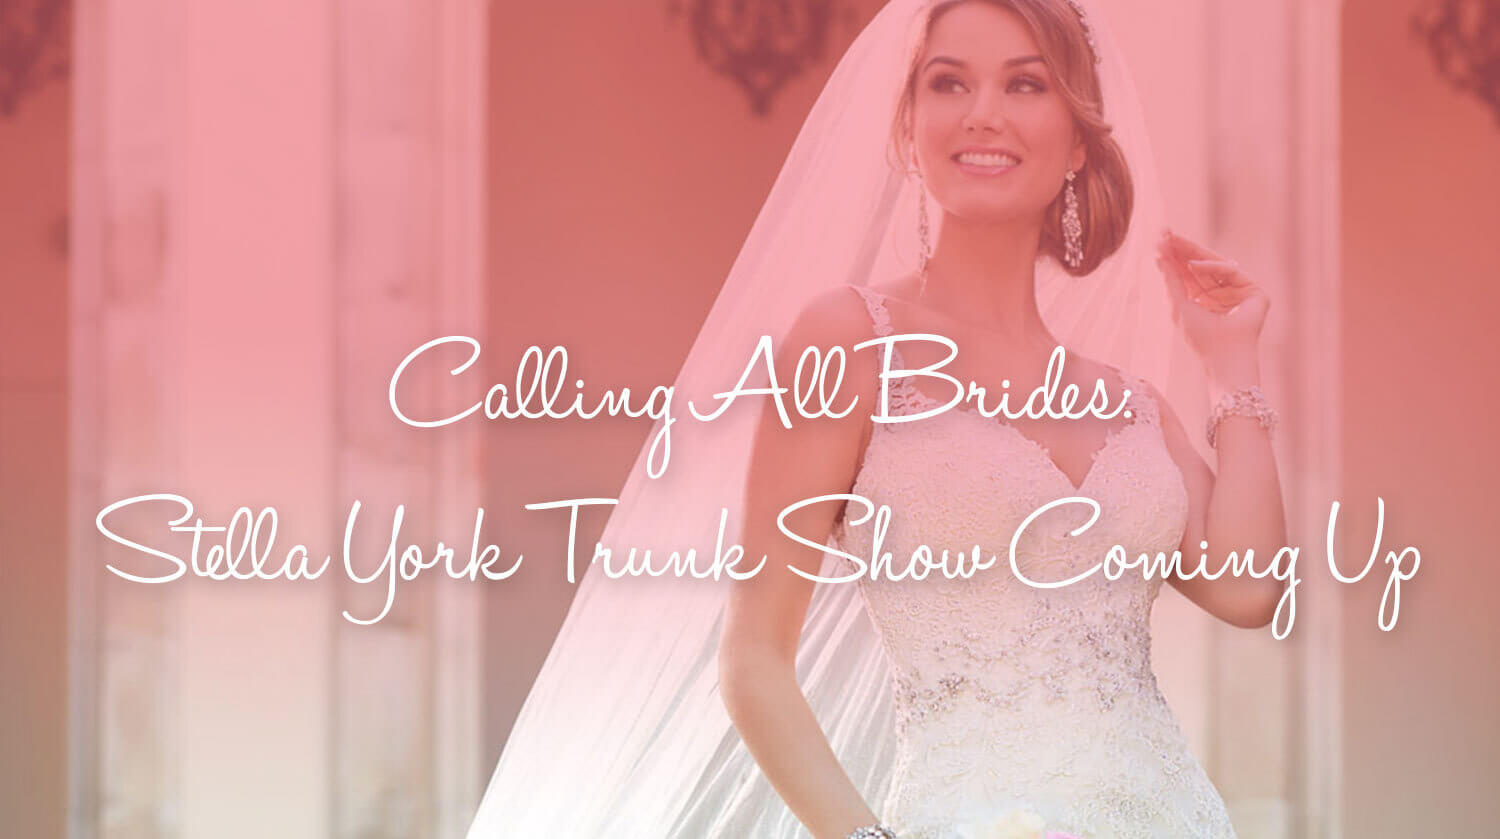 Calling All Brides: Stella York Trunk Show Coming Up